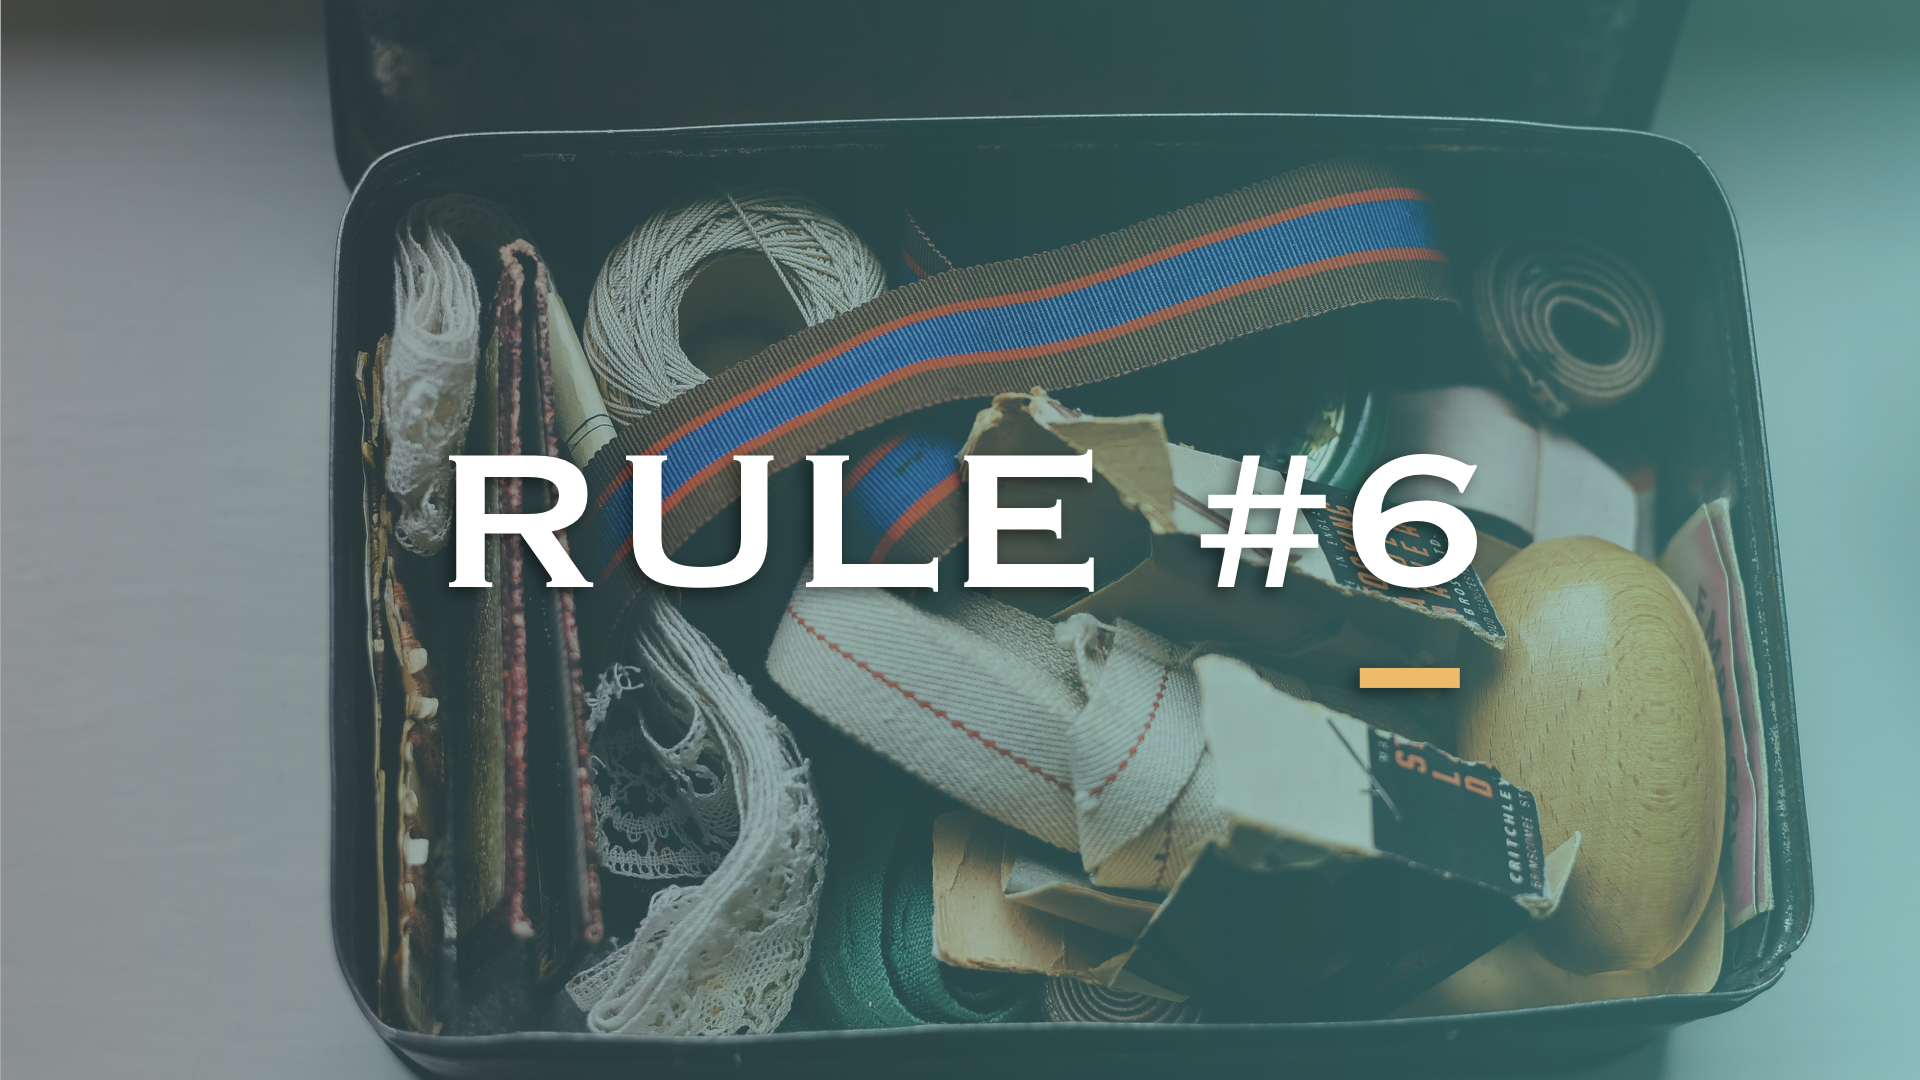 Rule #6 of Recycling